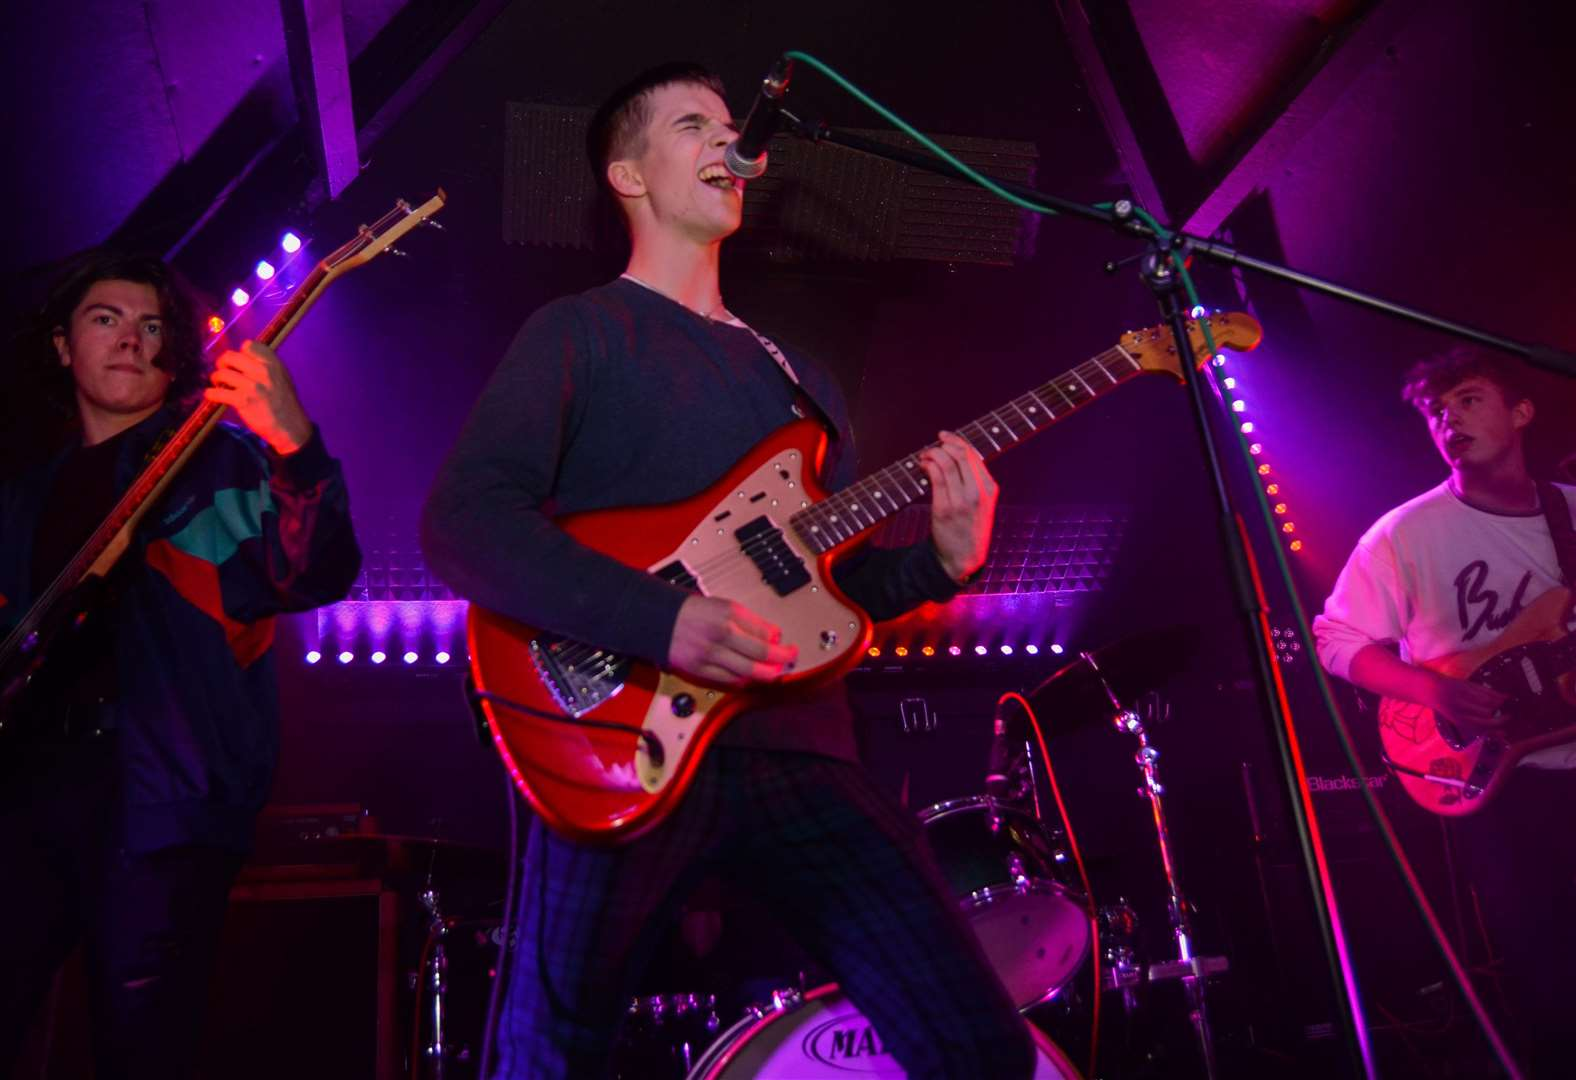 Riviera rock Half Moon Battle of the Bands to win place in final